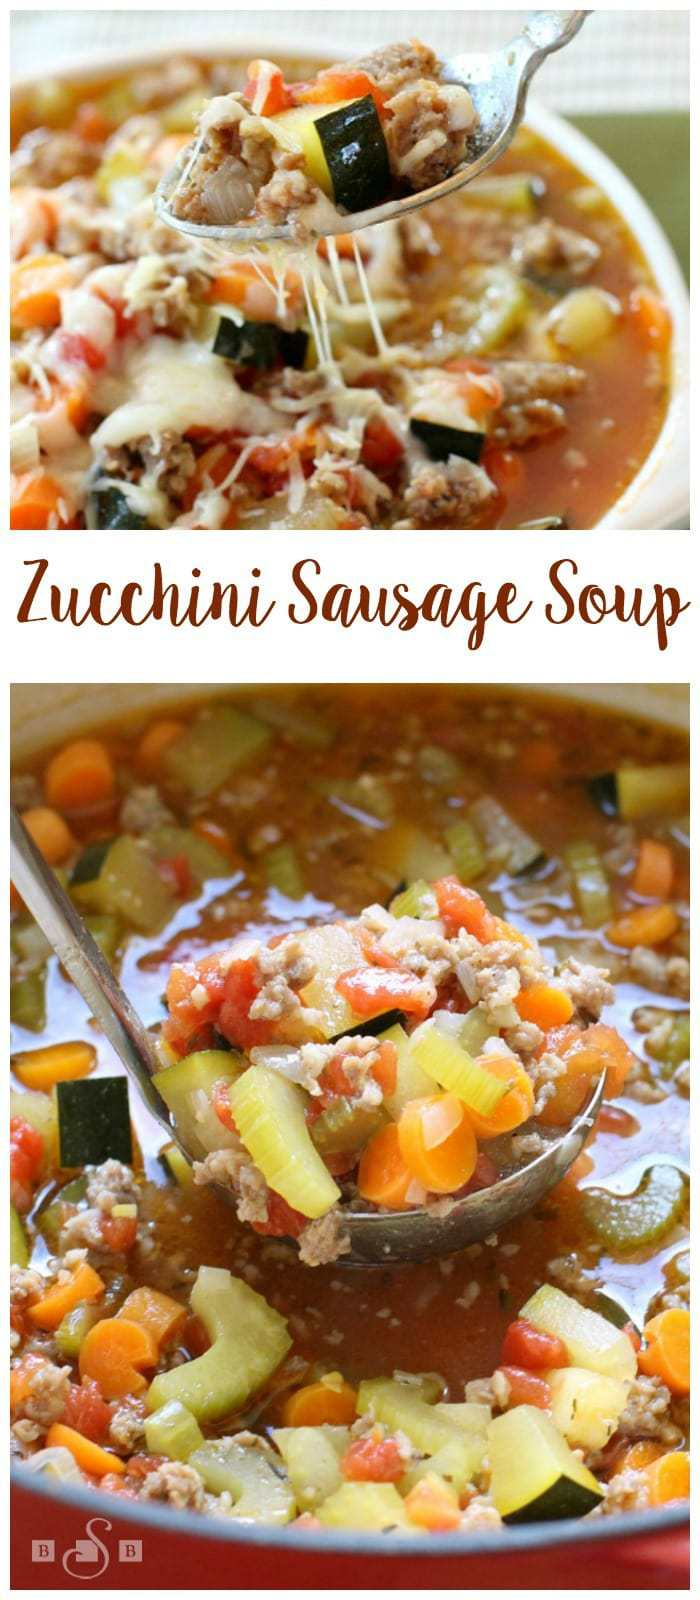 Easy recipe for Zucchini Sausage Soup that has wonderful fresh flavors and satisfies that comfort food craving all at once. Lovely #zucchini dinner recipe from Butter With A Side of Bread